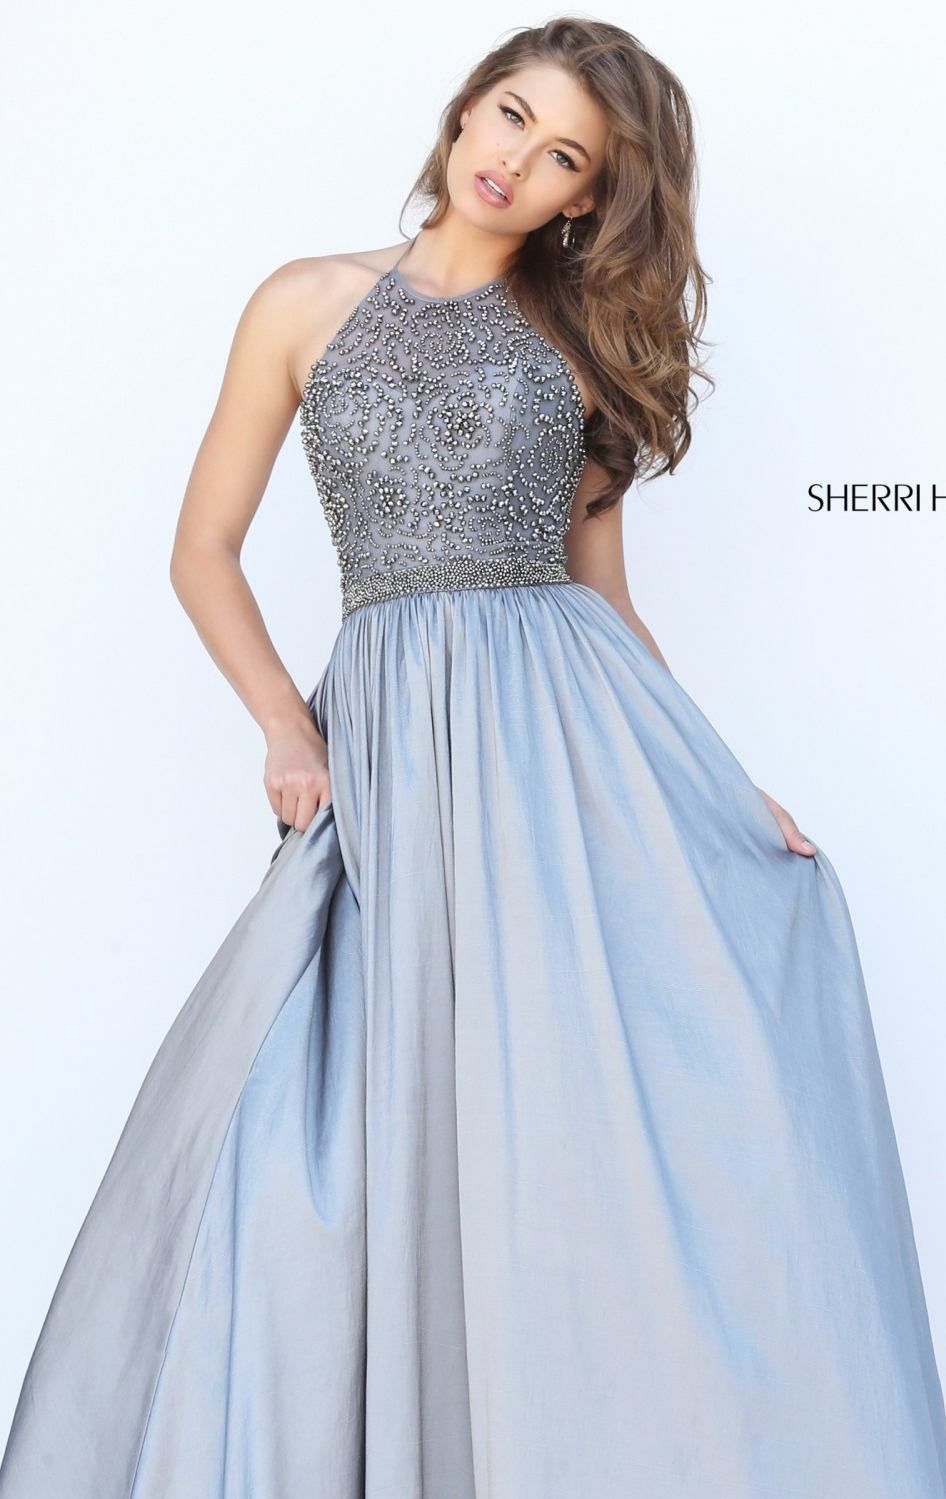 Feel the magic of sherri hill halter neckline with midrise